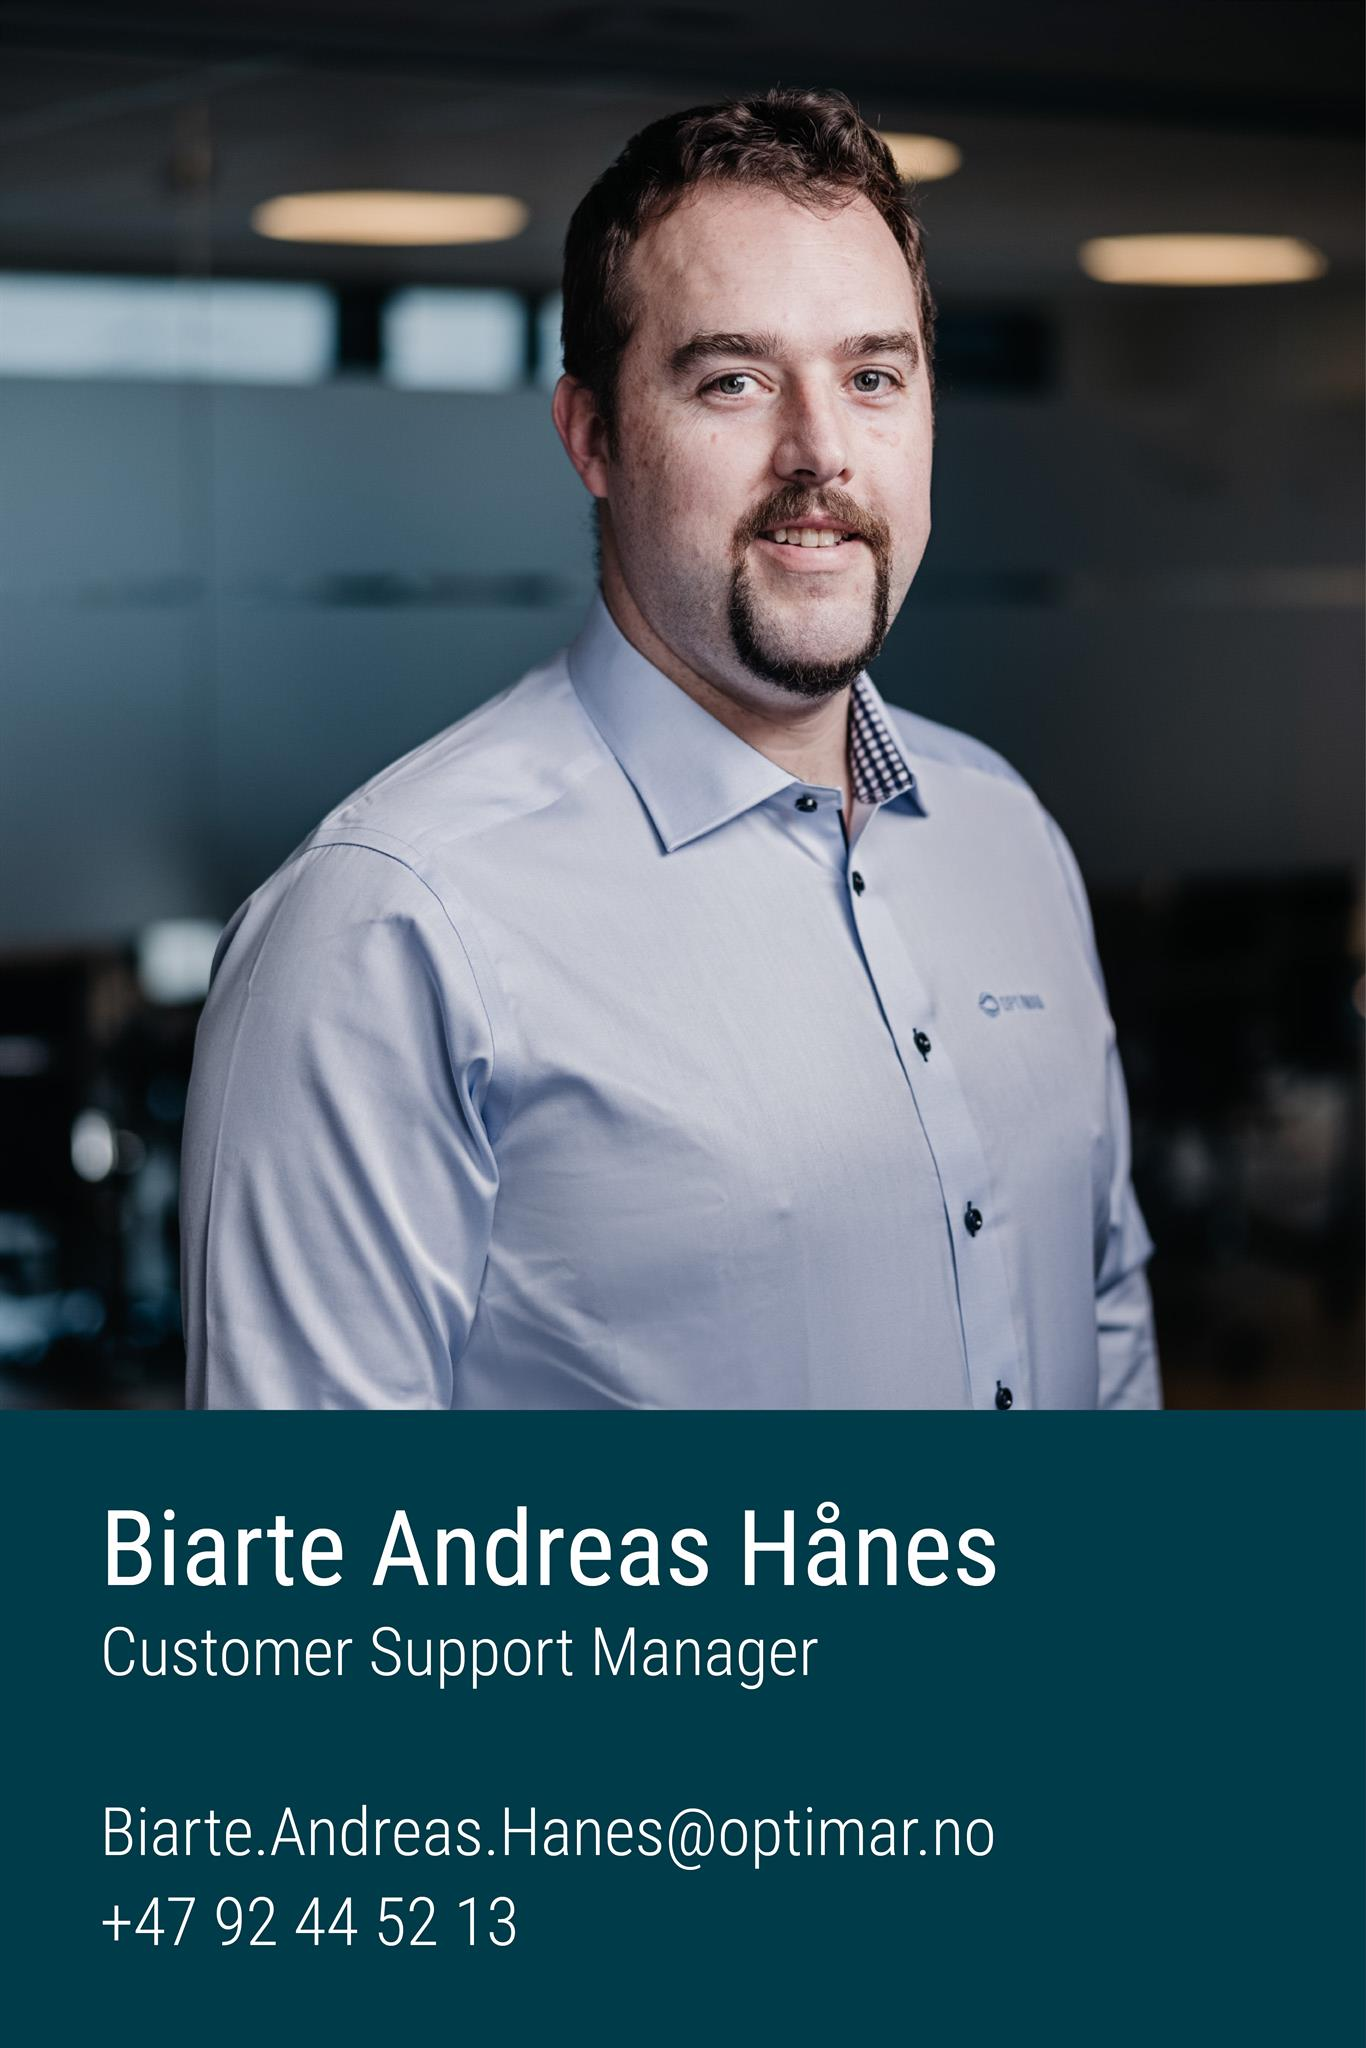 Biarte Andreas Hånes